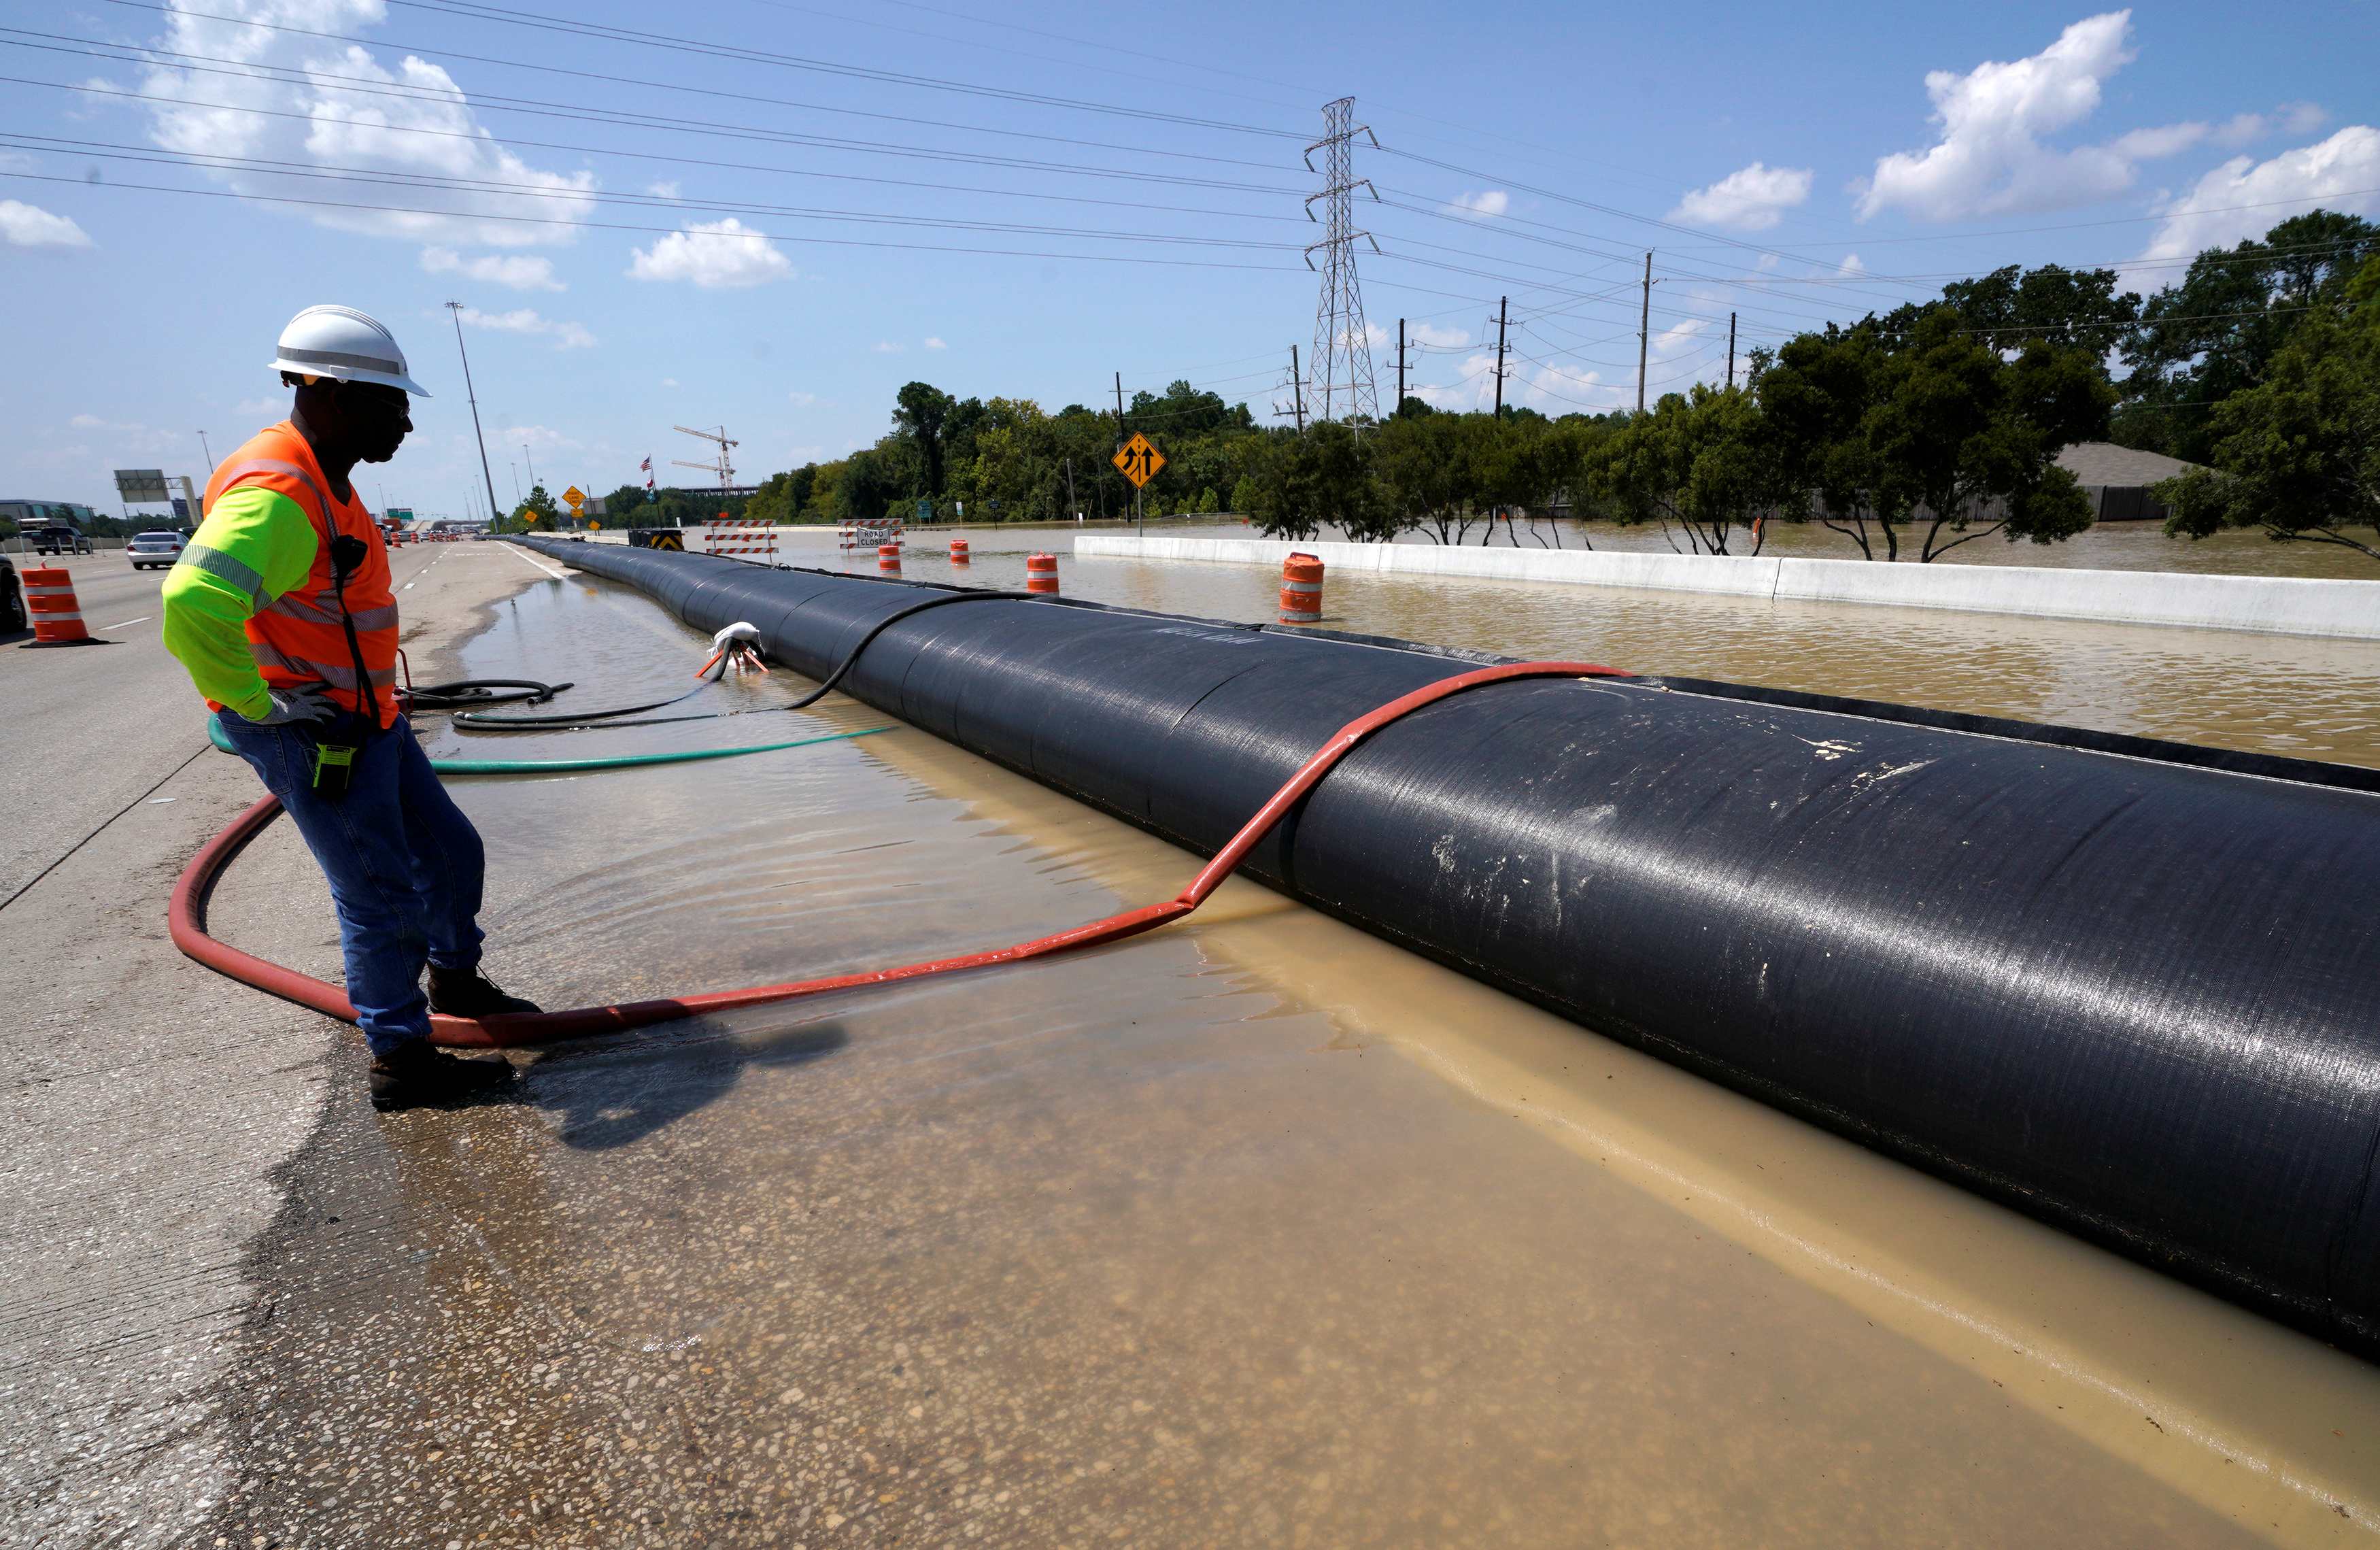 A Texas Department of Transportation worker monitors a temporary water filled dam keeping Harvey floodwaters from getting onto highway I-10 in Houston, Texas August 31, 2017. REUTERS/Rick Wilking - RC1FDAADF450